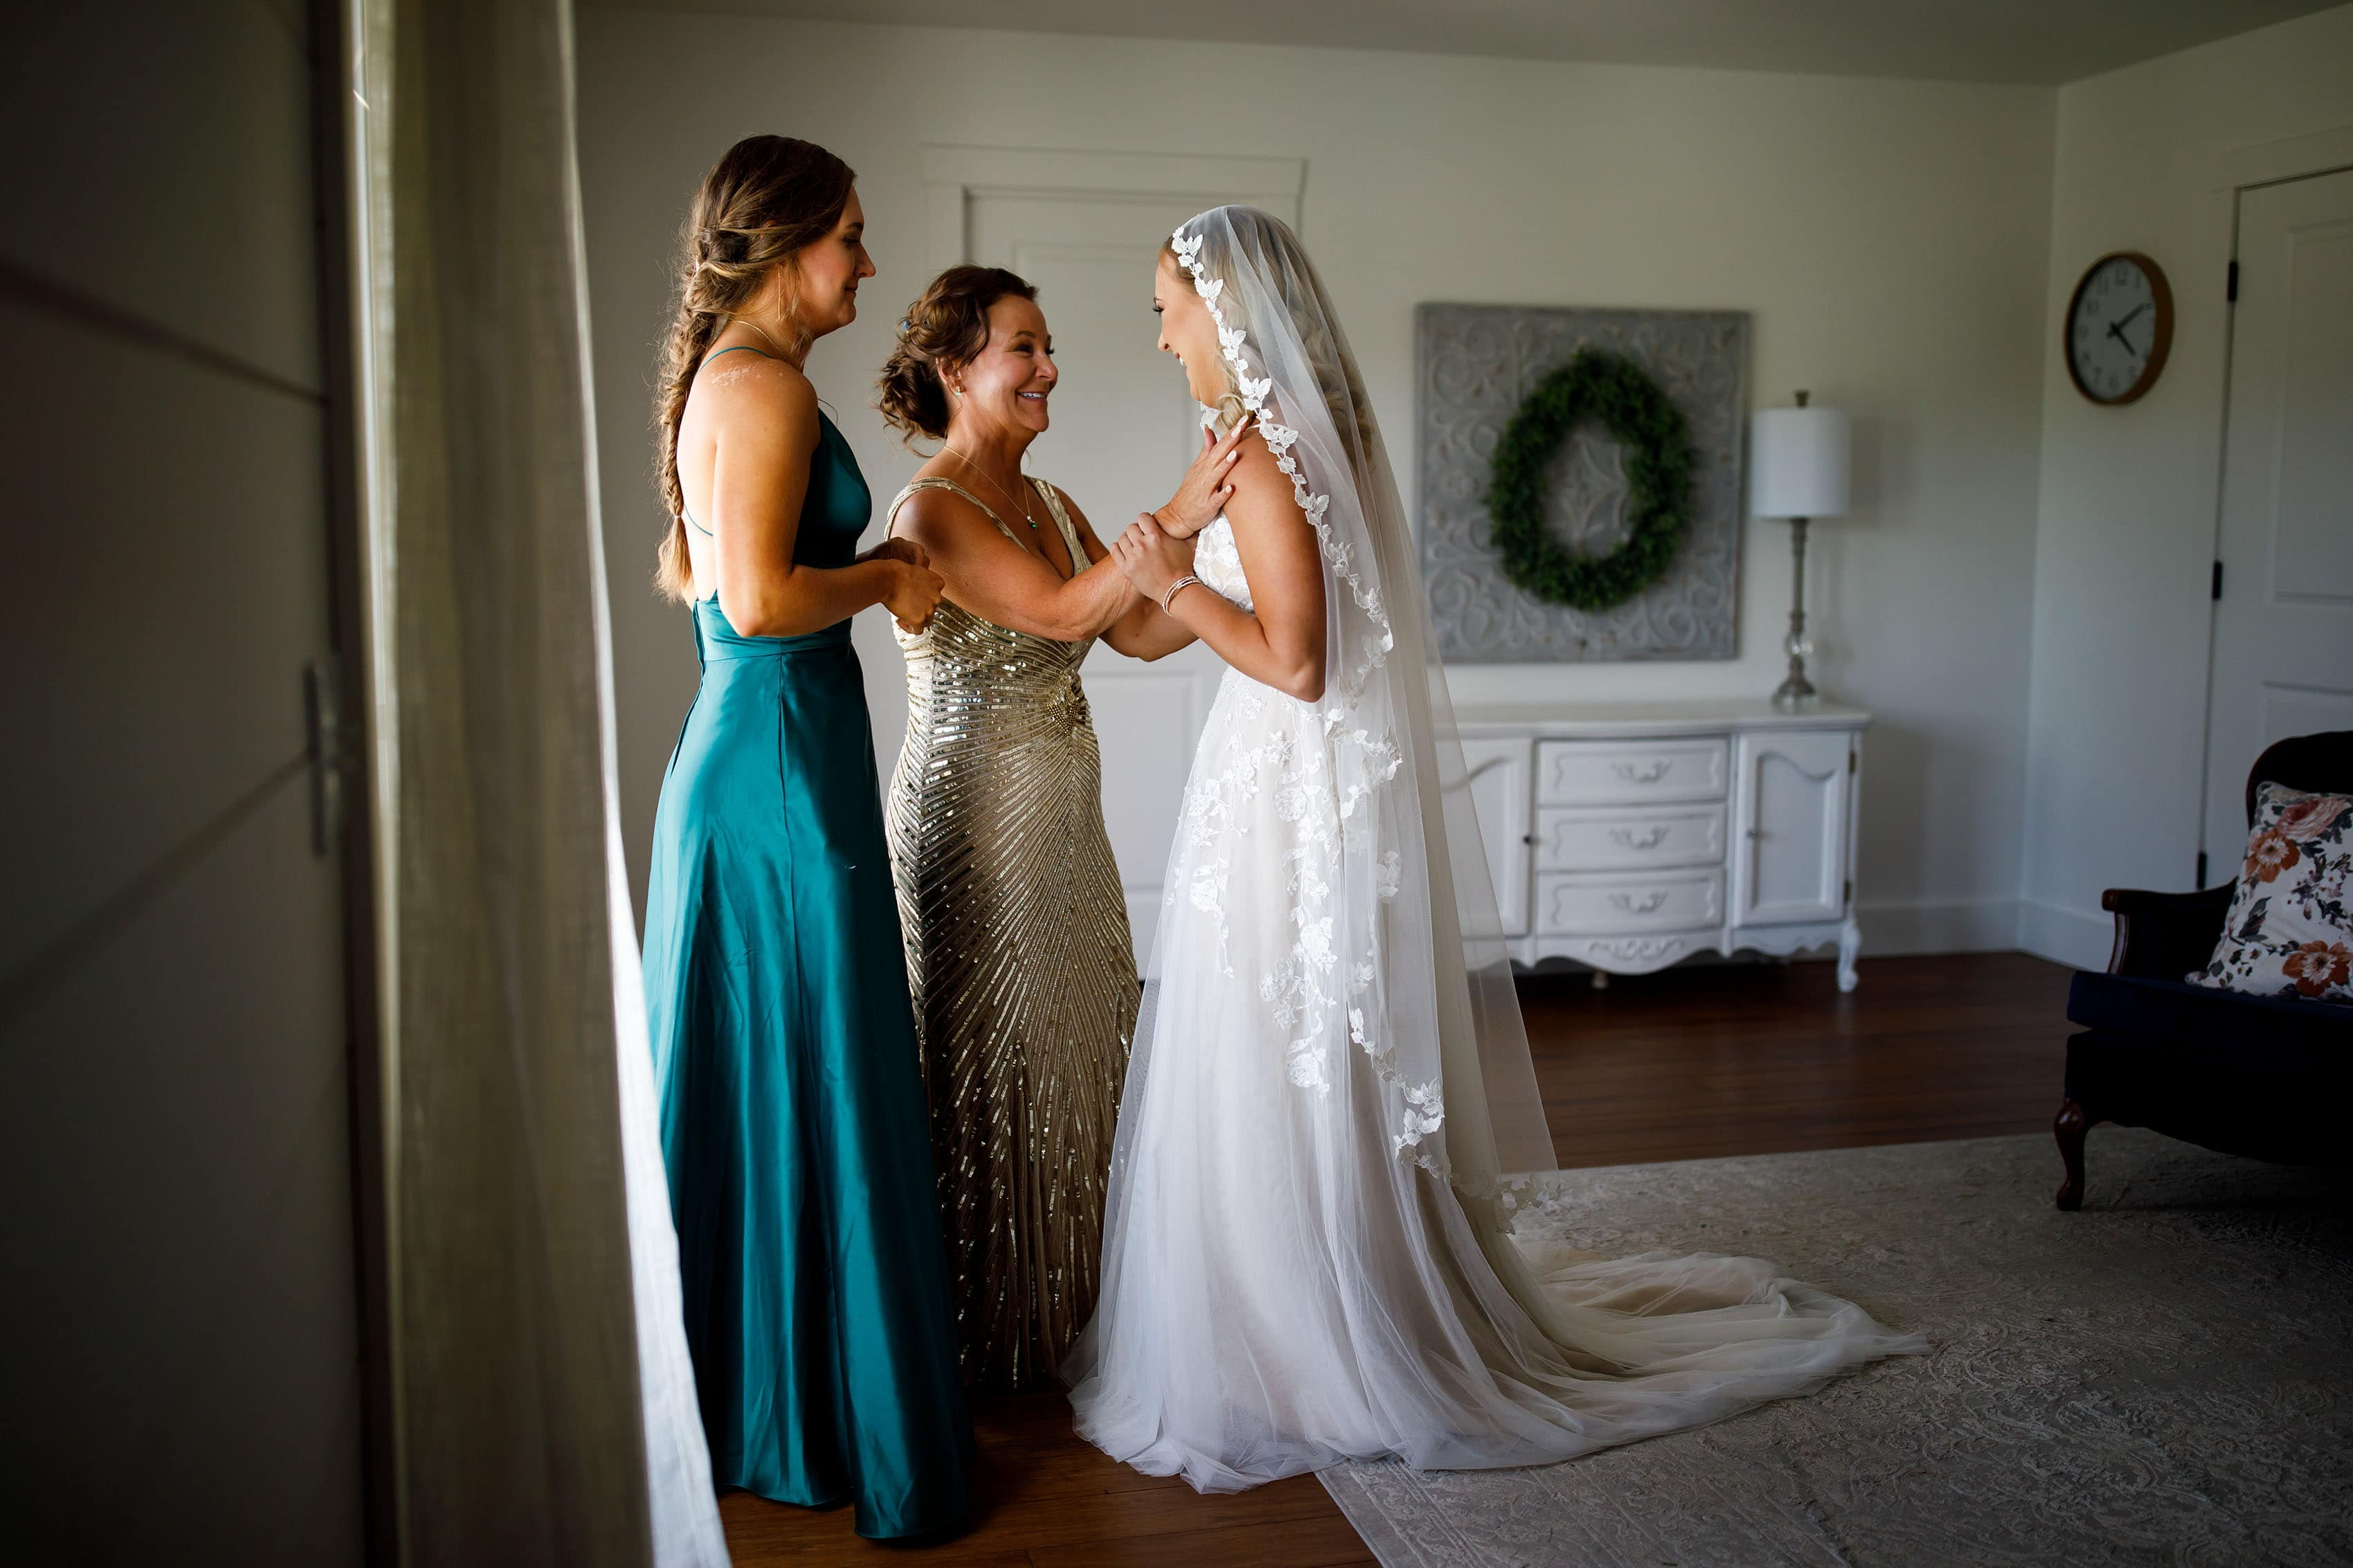 A bride and mother share a moment together in the bridal suite at Emerson Fields